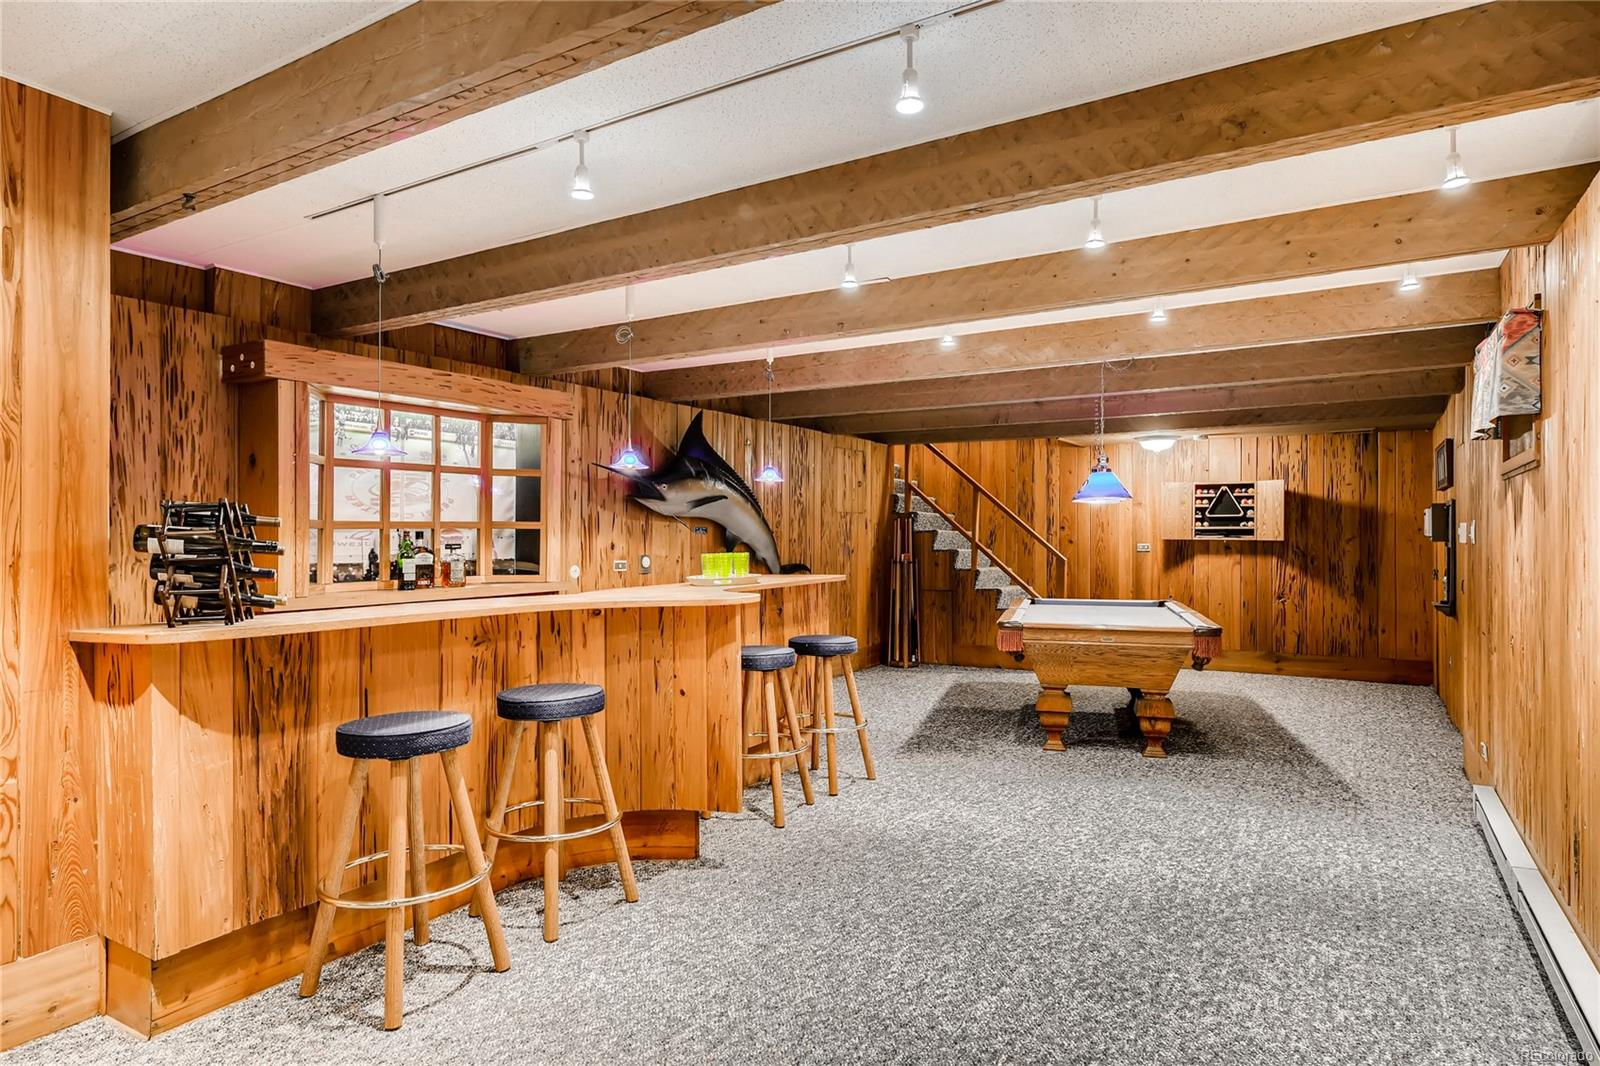 Basement Recreation Room and Bar paneled with Cypress wood.